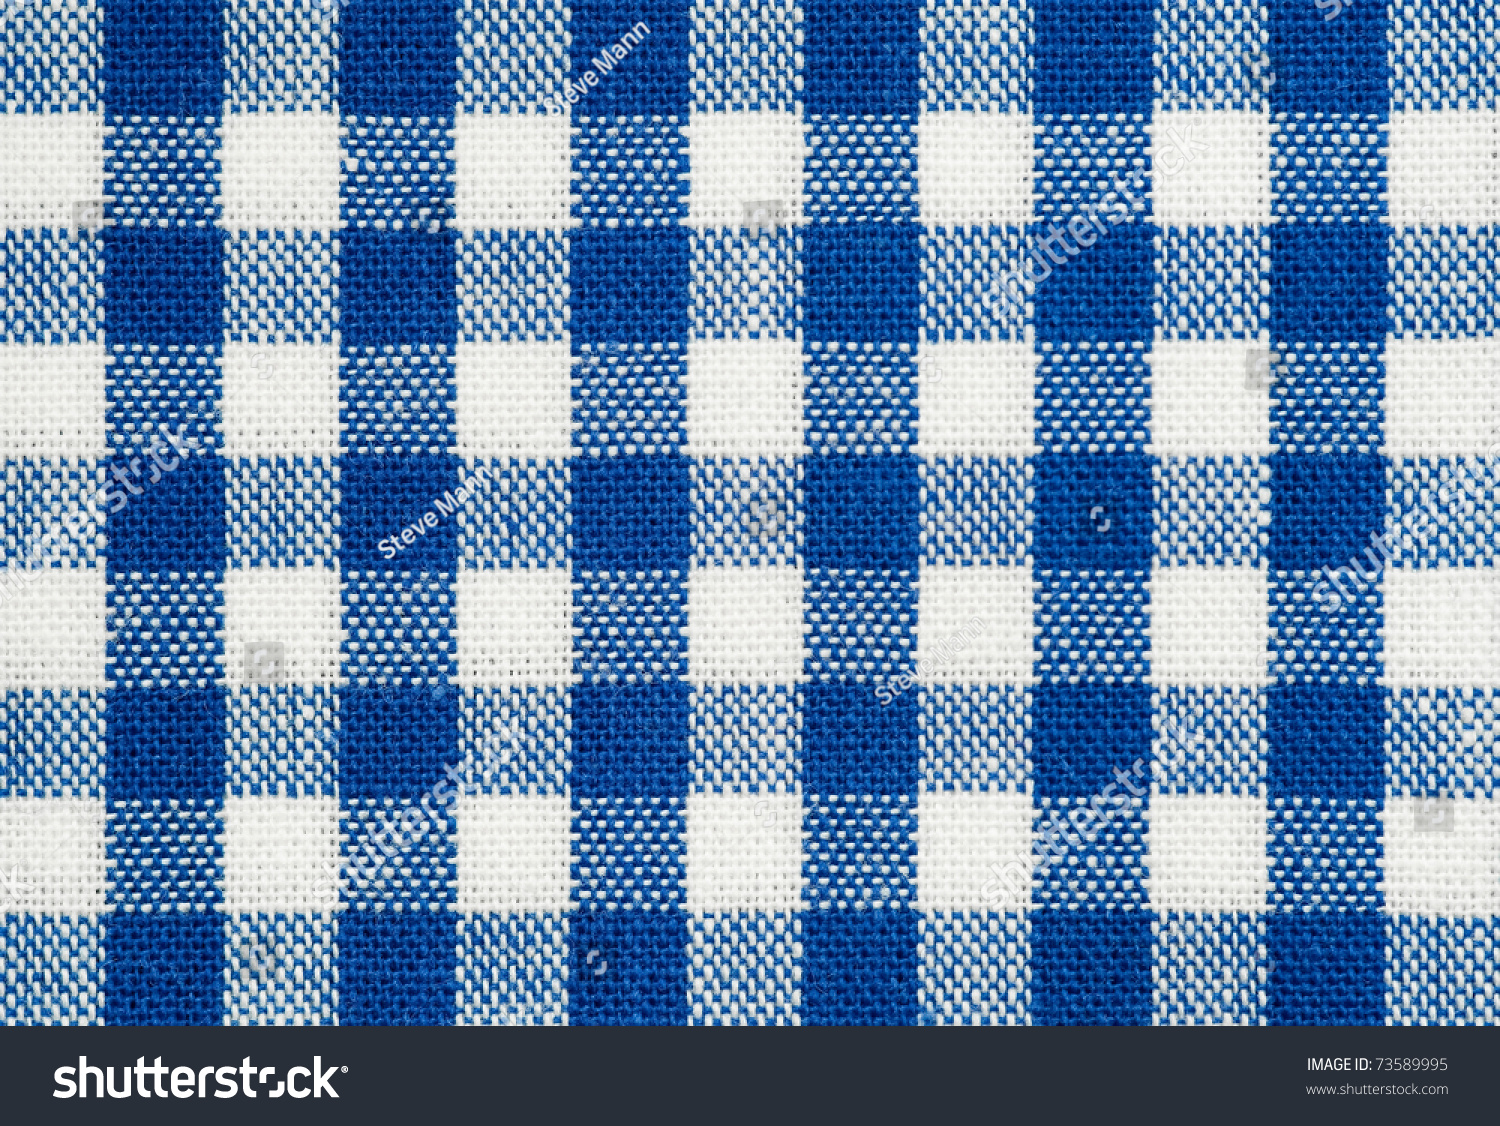 Blue tablecloth background - Background Of Blue And White Check Picnic Tablecloth Fabric